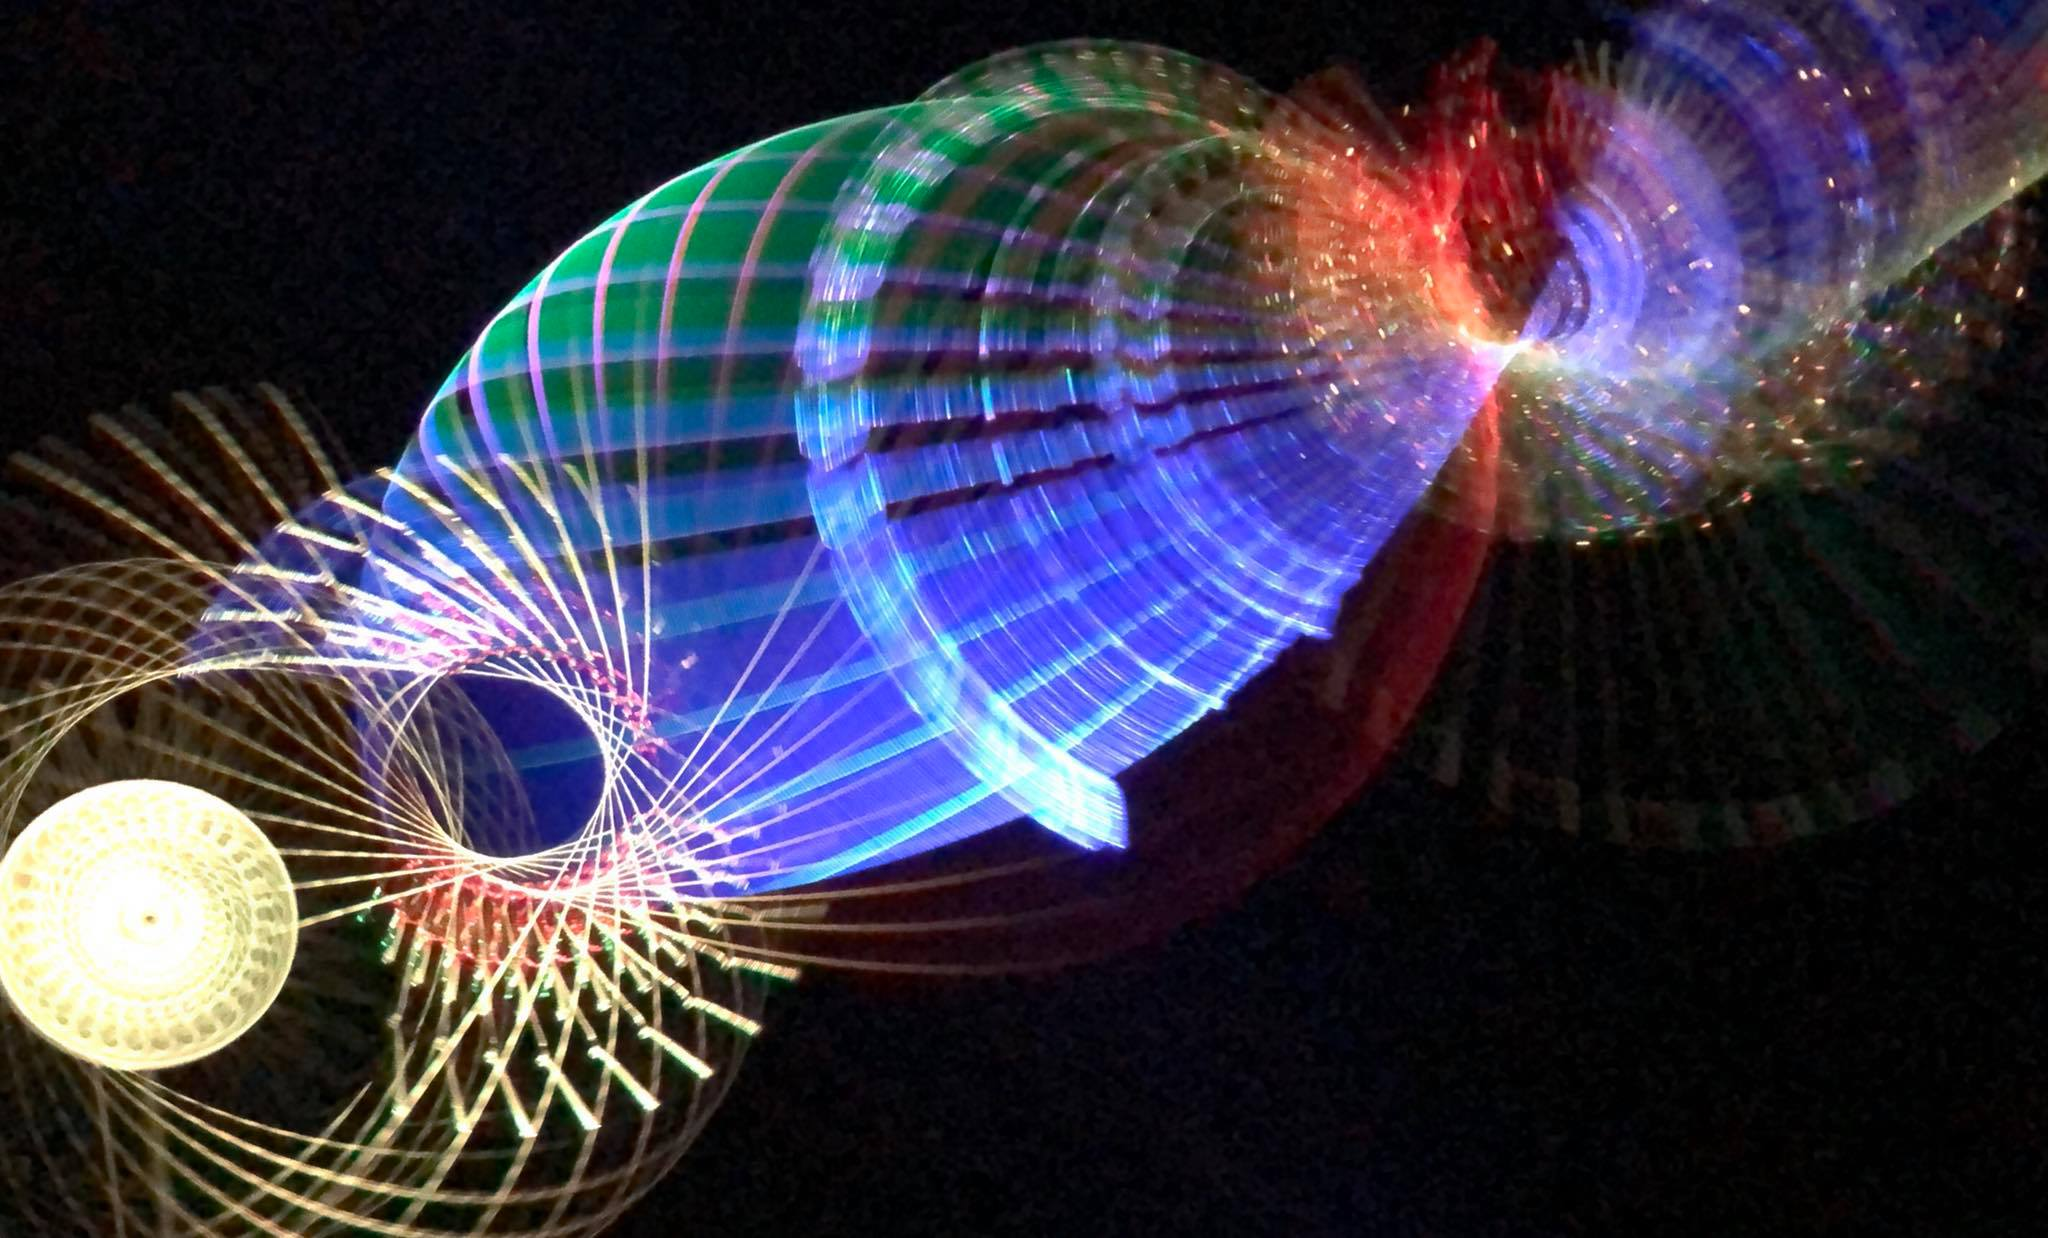 multi colored artwork using strings and strobe lights